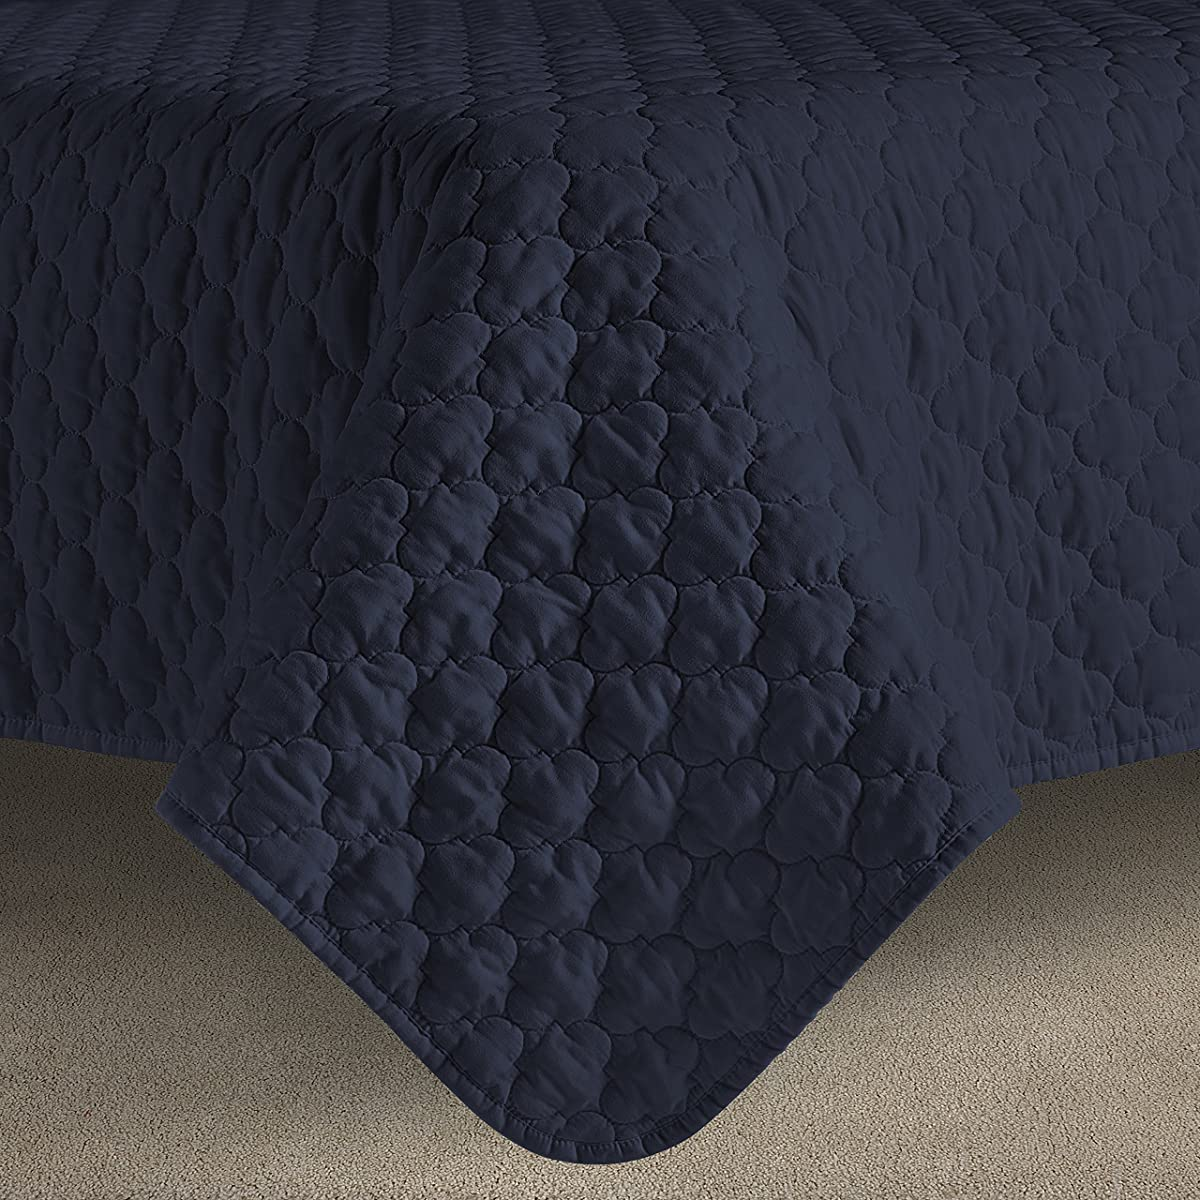 Oversized and Prewashed Comfy Bedding Lantern Ogee Quilted 3-piece Bedspread Coverlet Set (Full/Queen, Navy Blue)